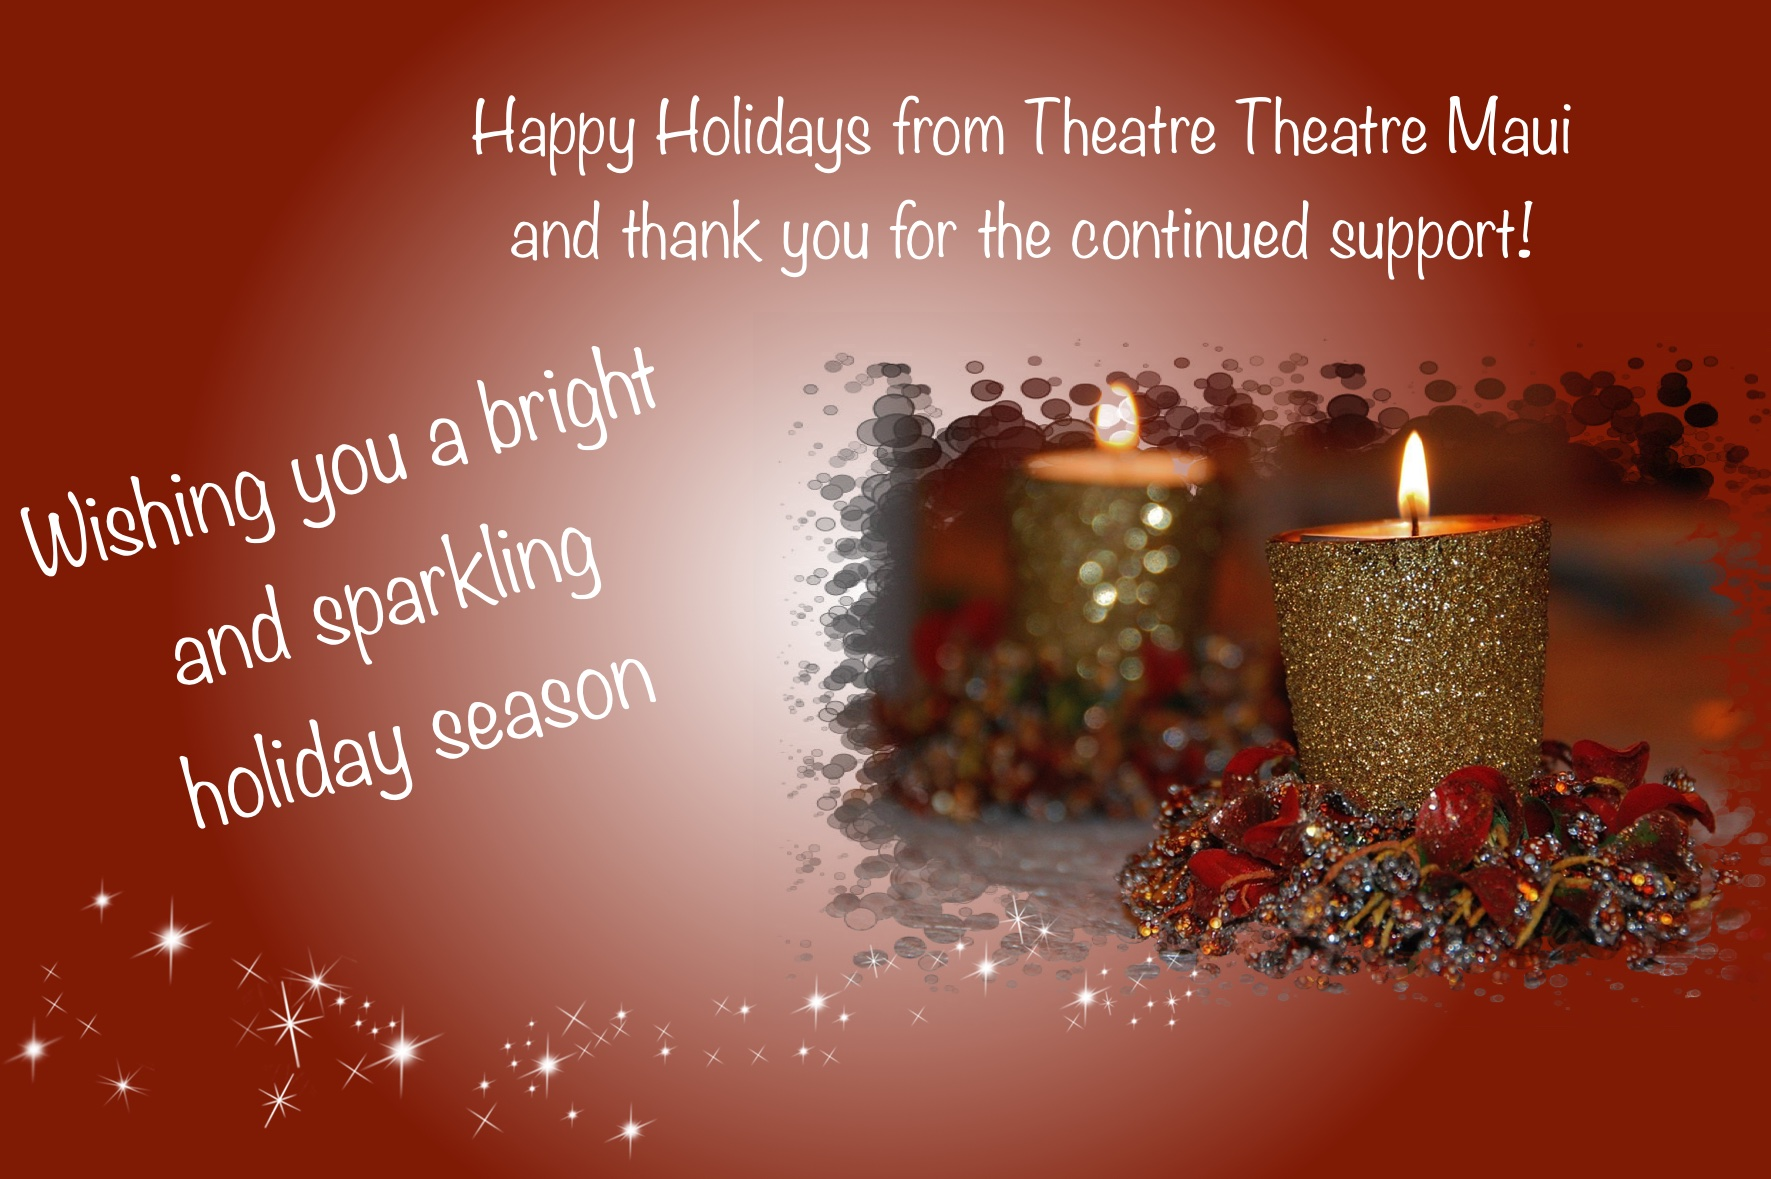 Happy Holidays from Theatre Theatre Maui!